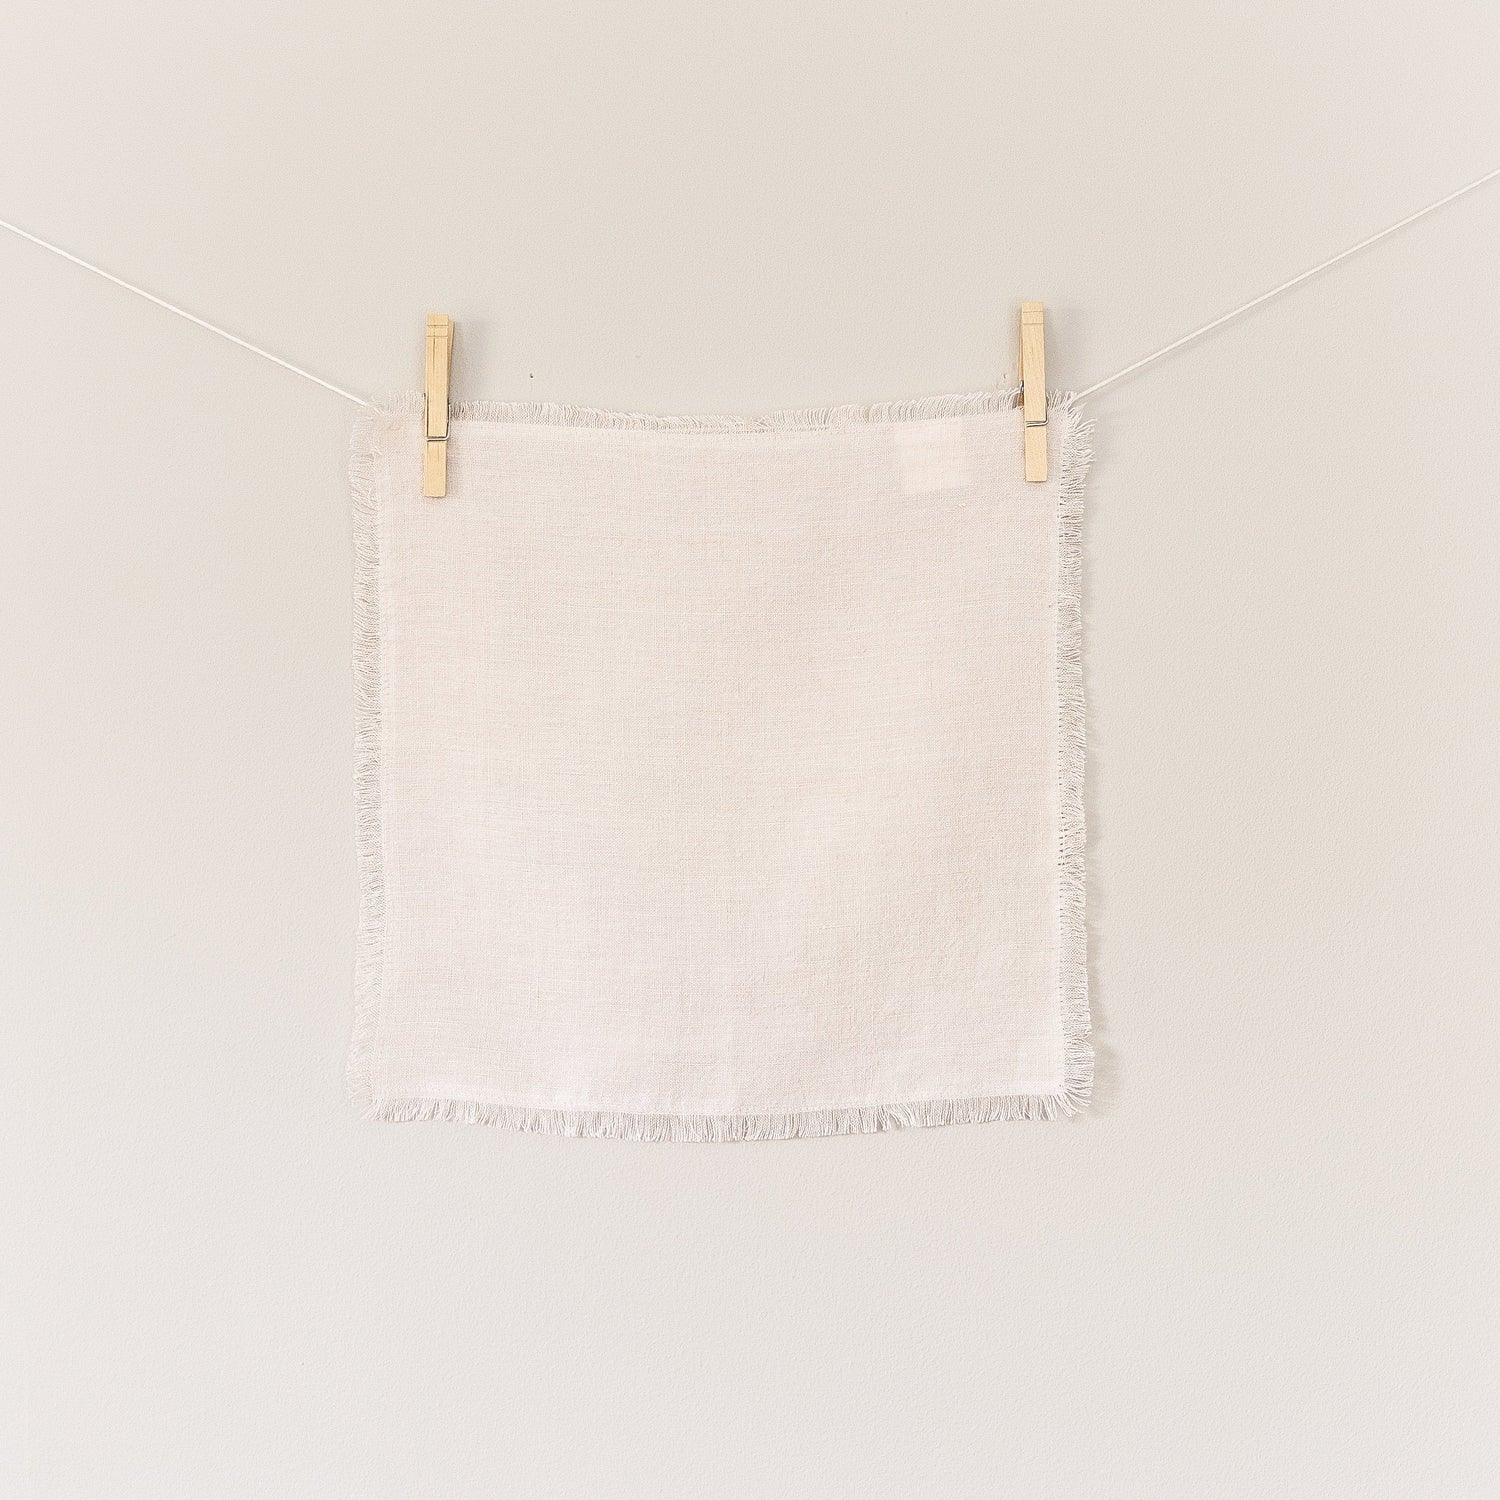 Creative Women Stone Washed Linen Napkin - Standstone Creative Women